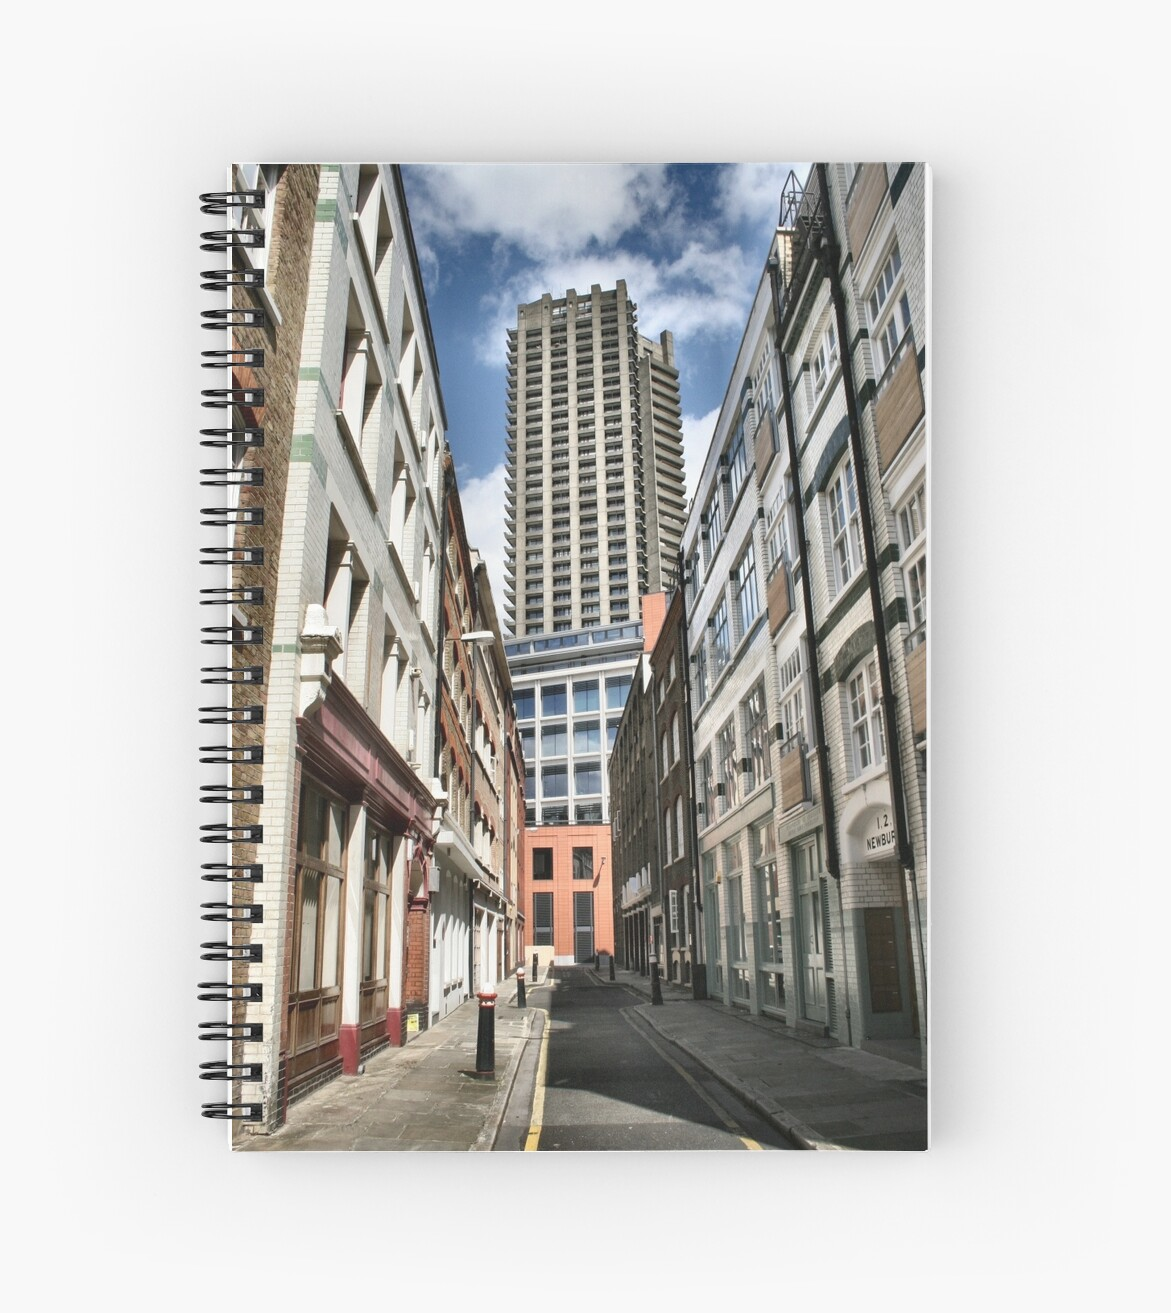 London old and new by Jeanne Horak-Druiff